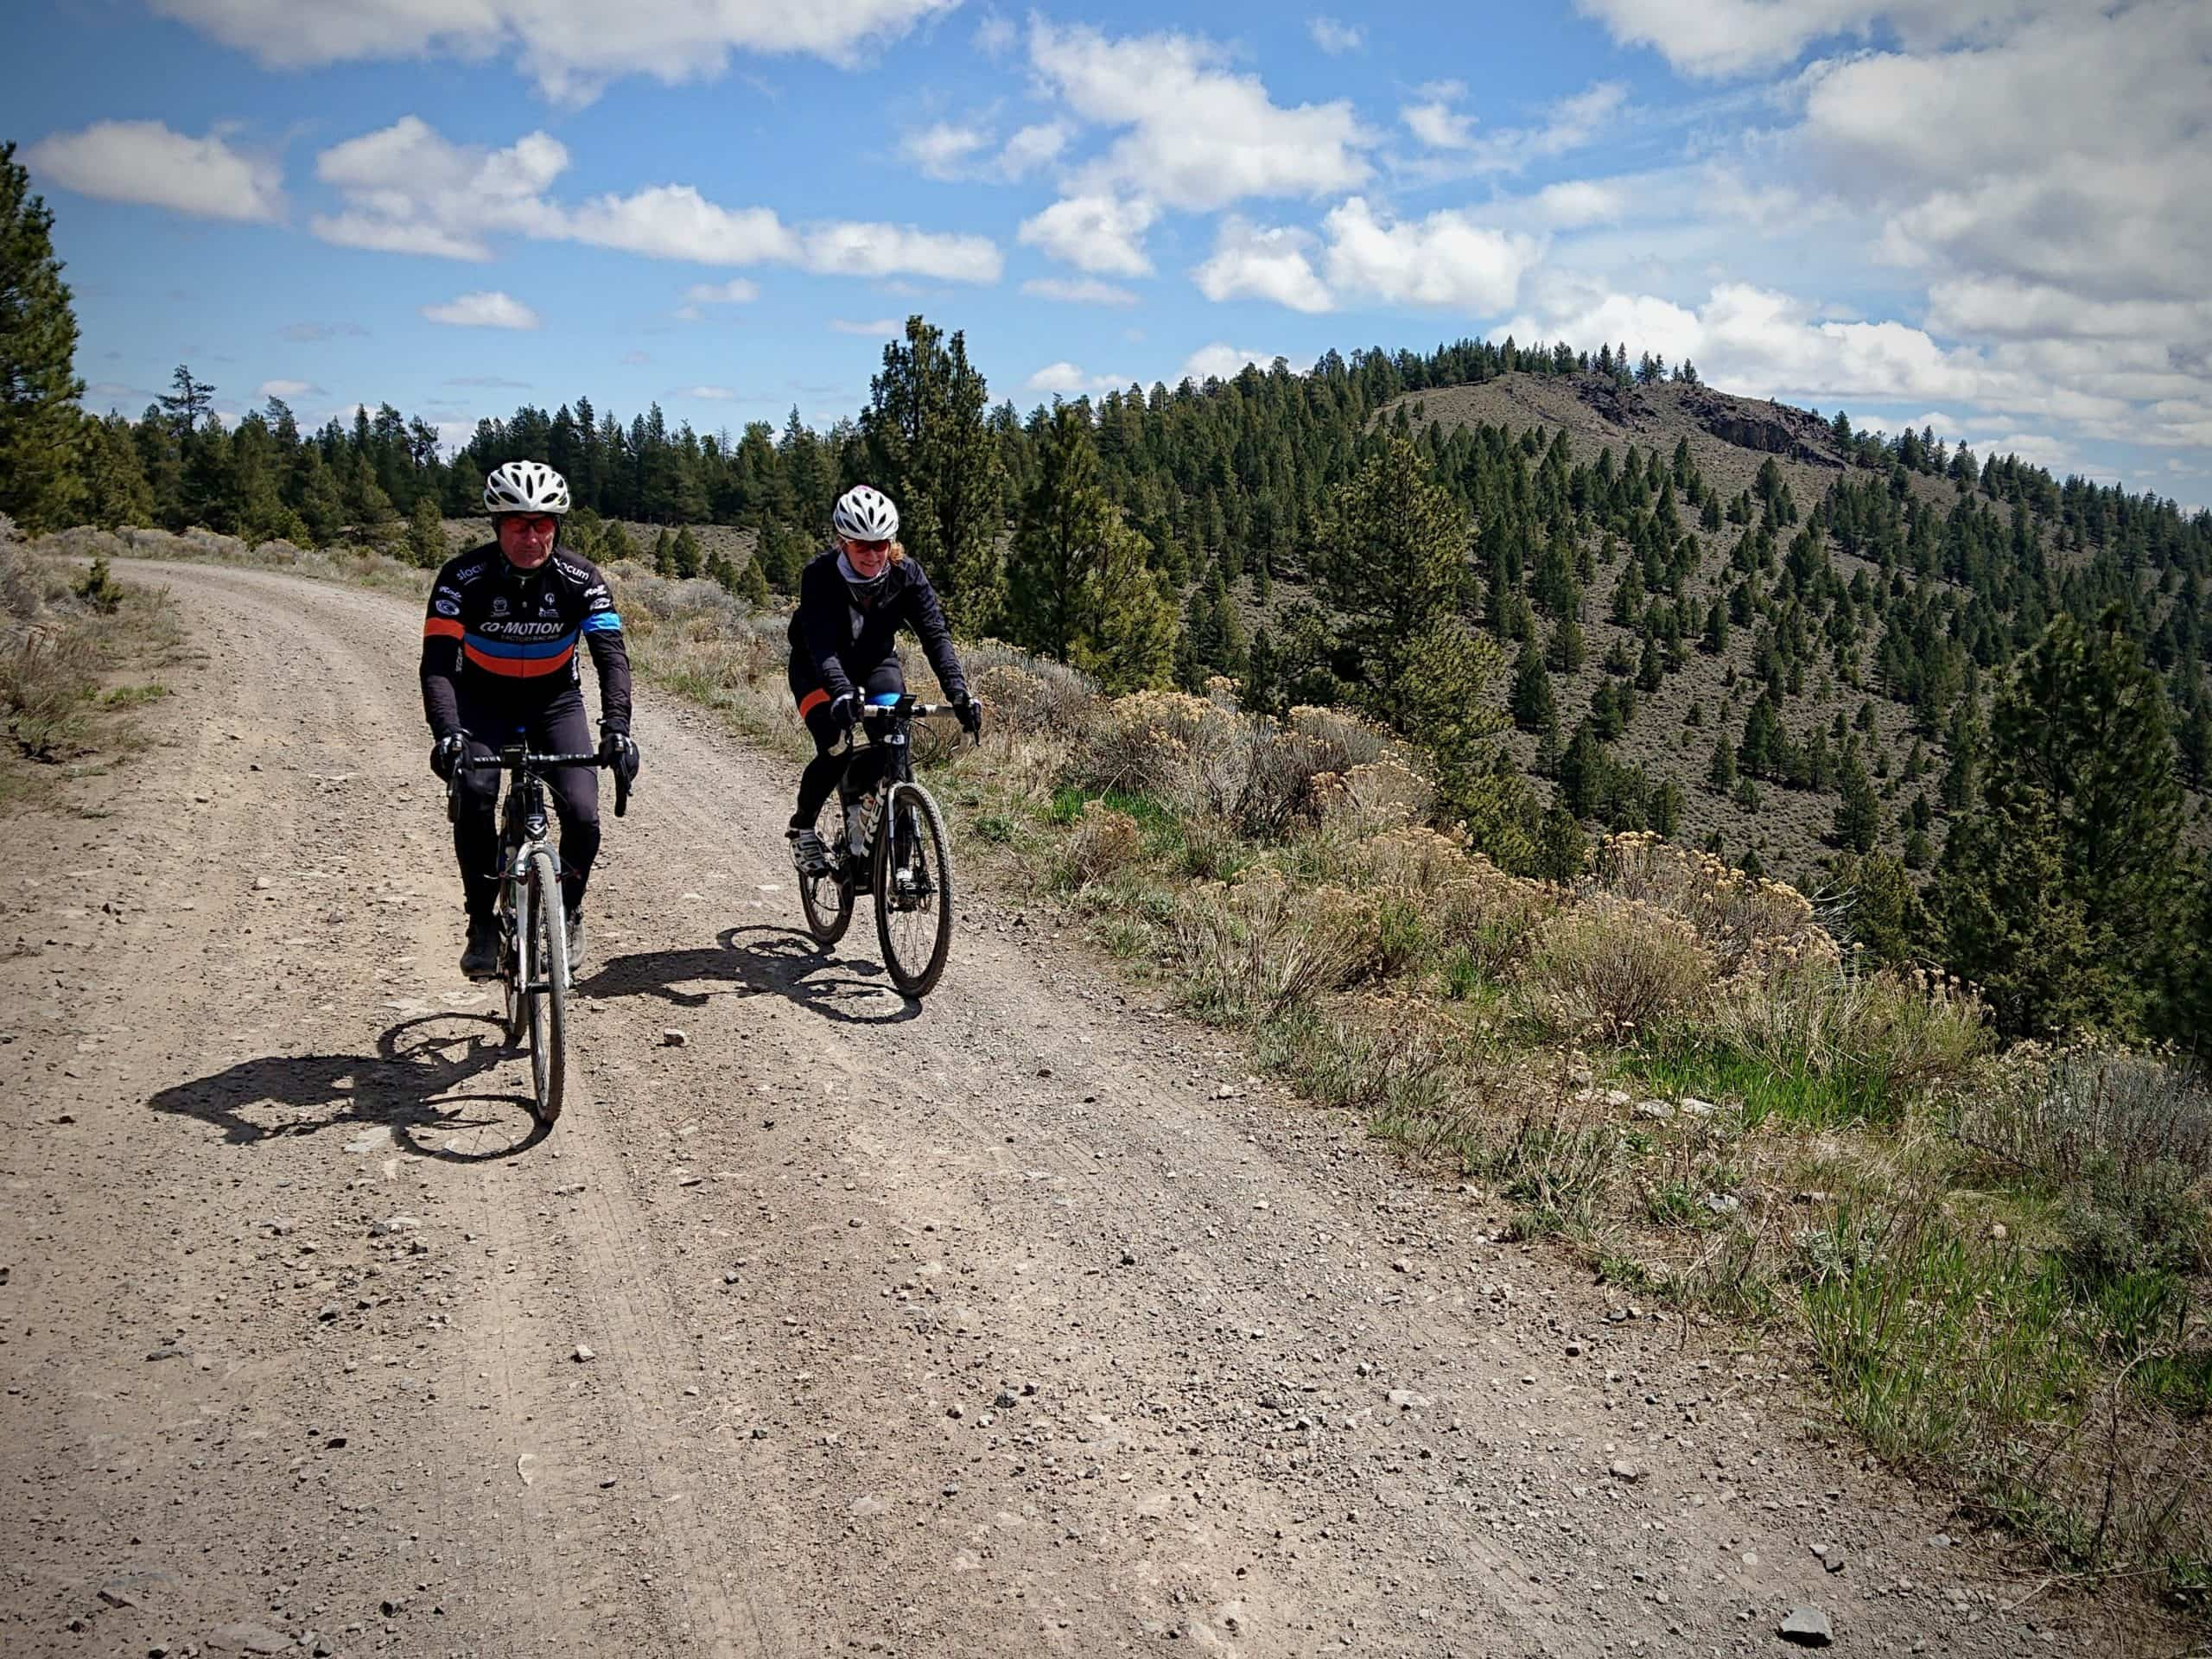 Gravel cyclists on forest service road at summit of Pine Mountain in Central Oregon.